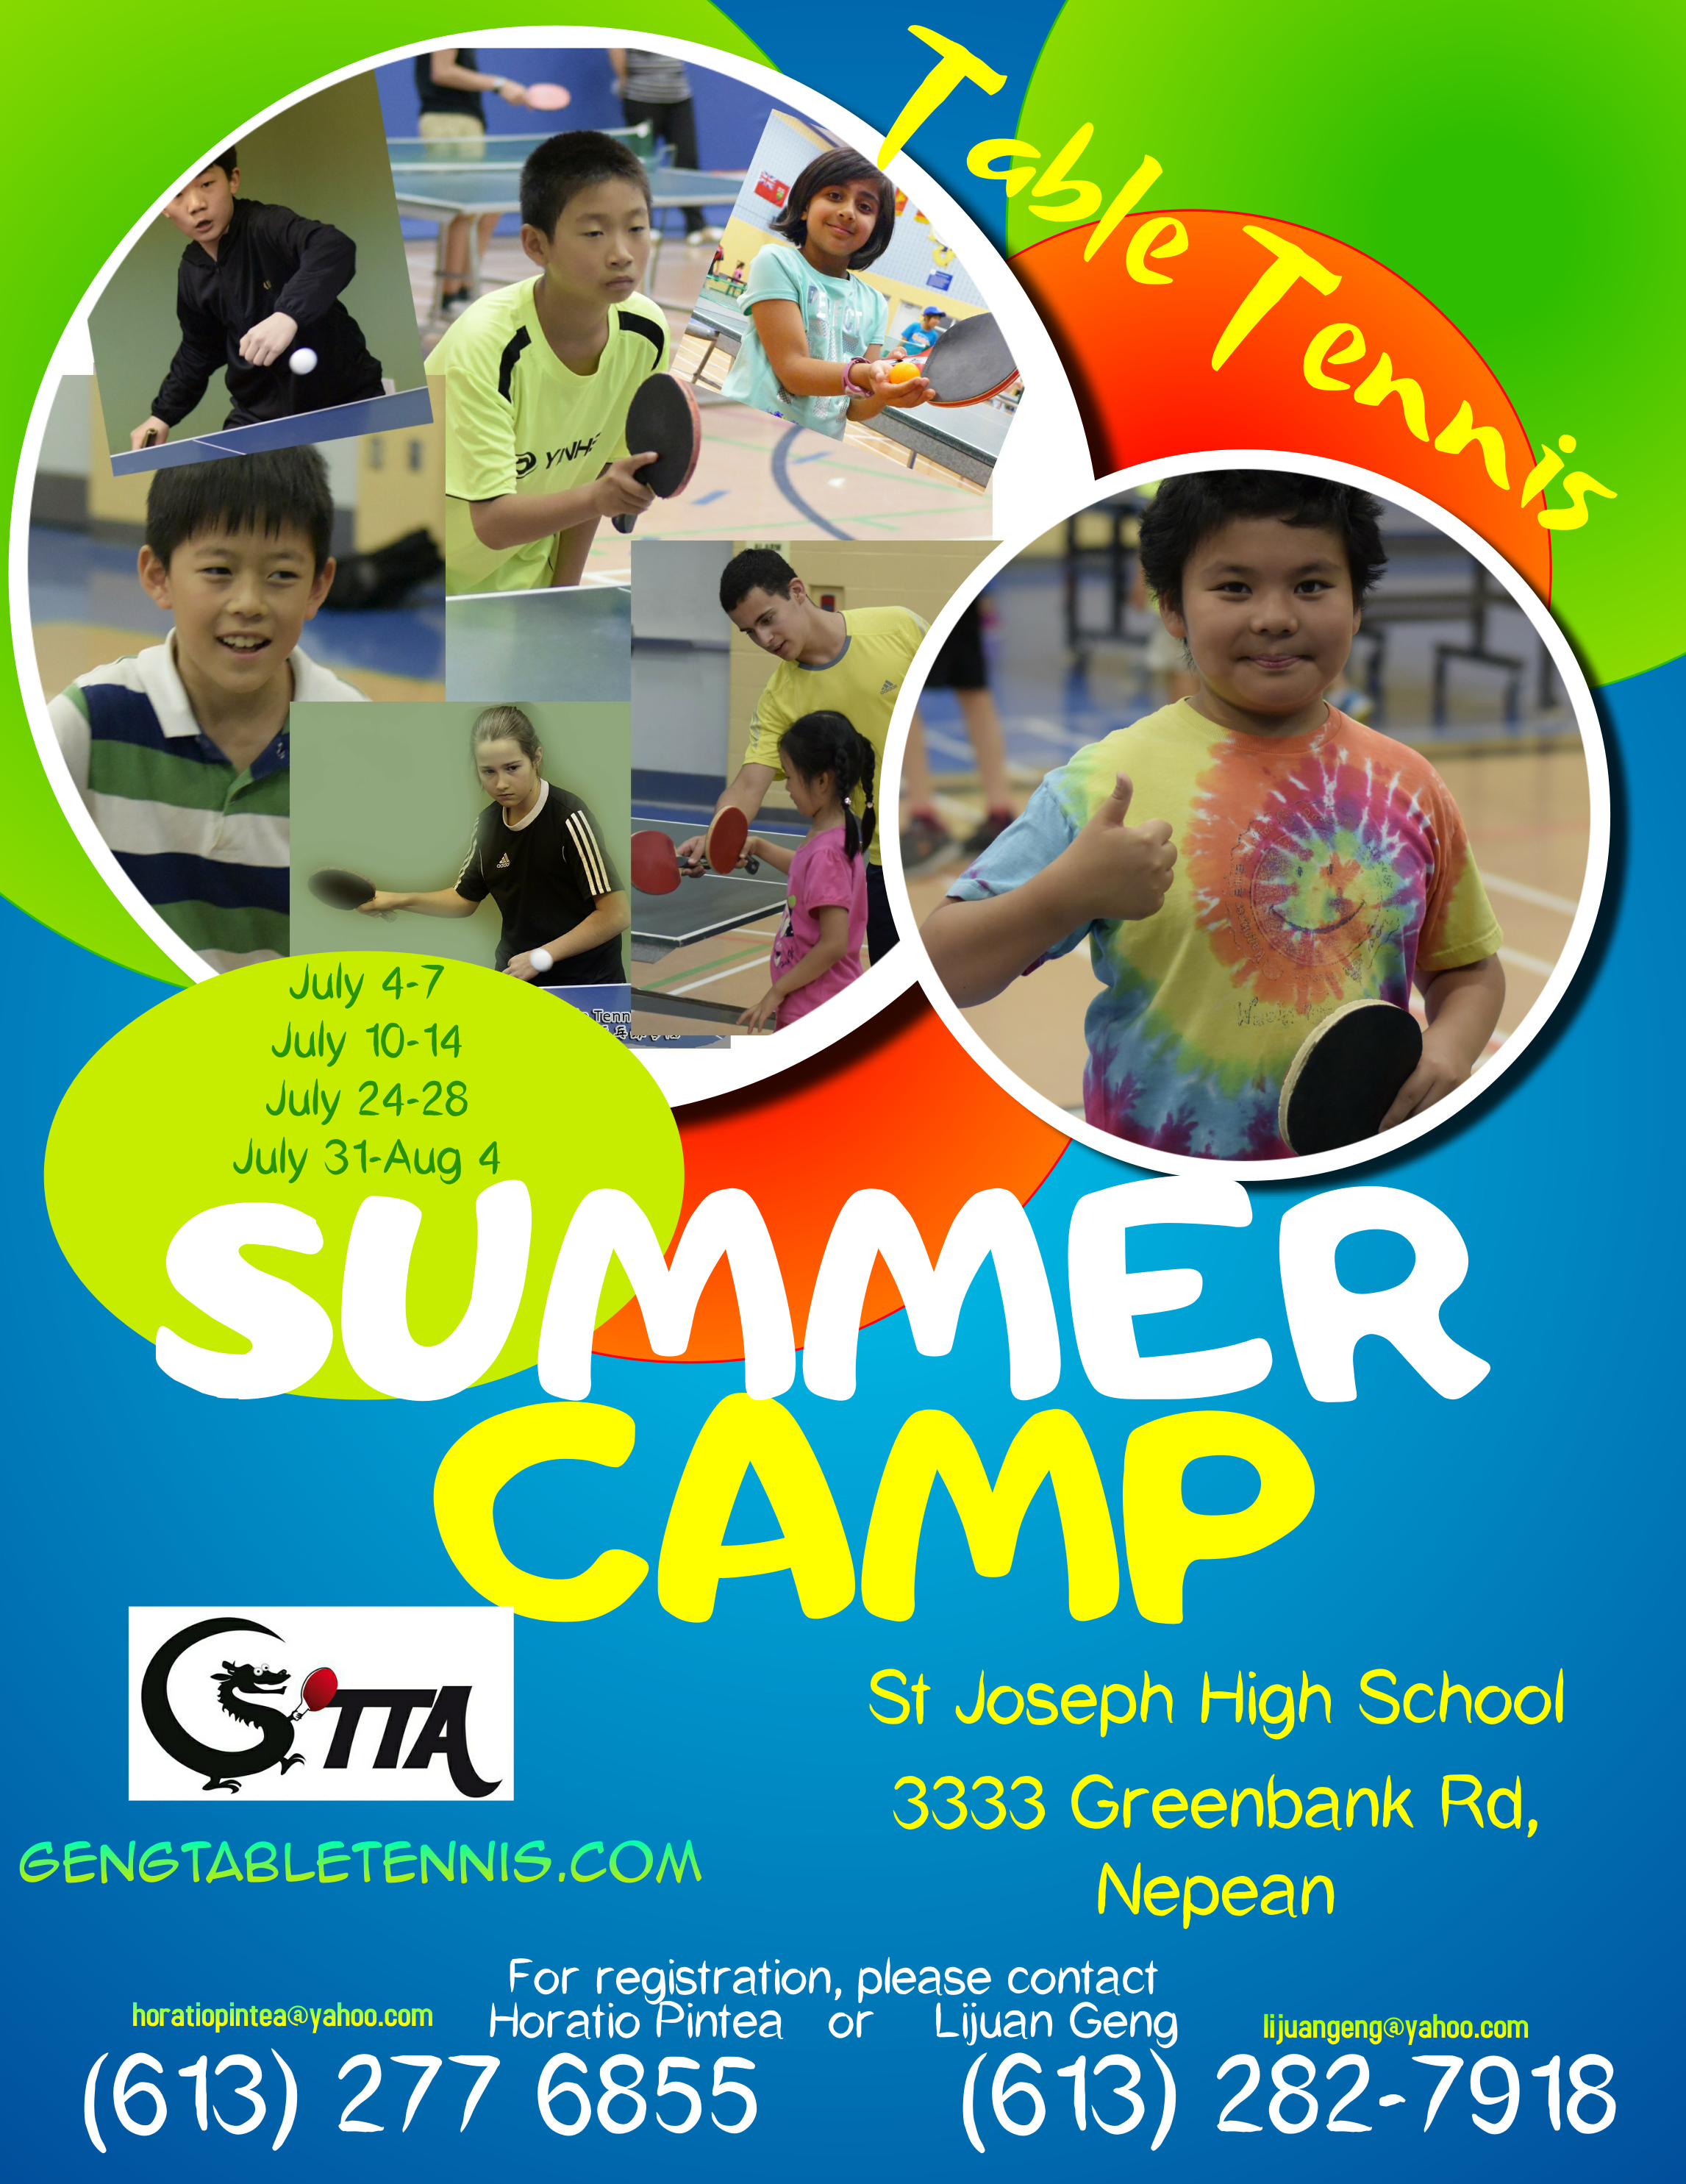 Copy of Kids Summer Camp Flyer Template (1)